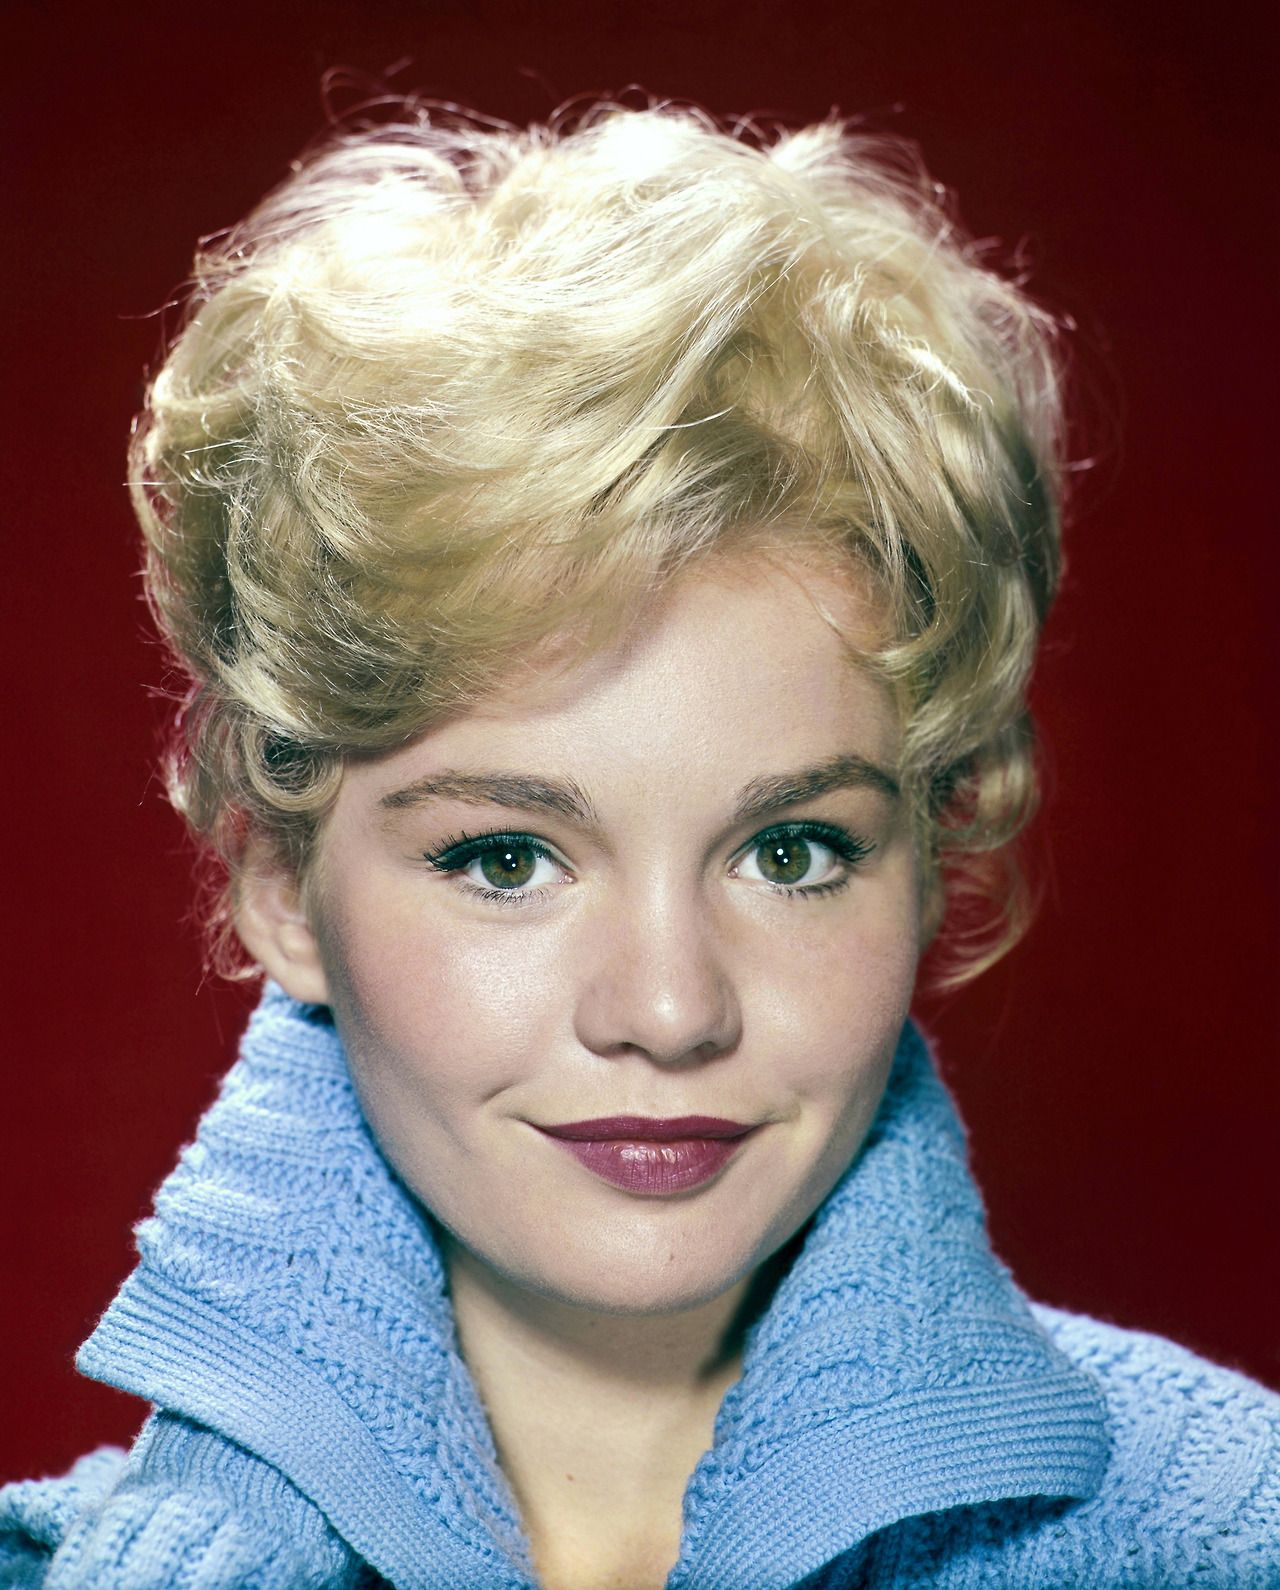 It was a BIG improvement when Tuesday Weld went blonde